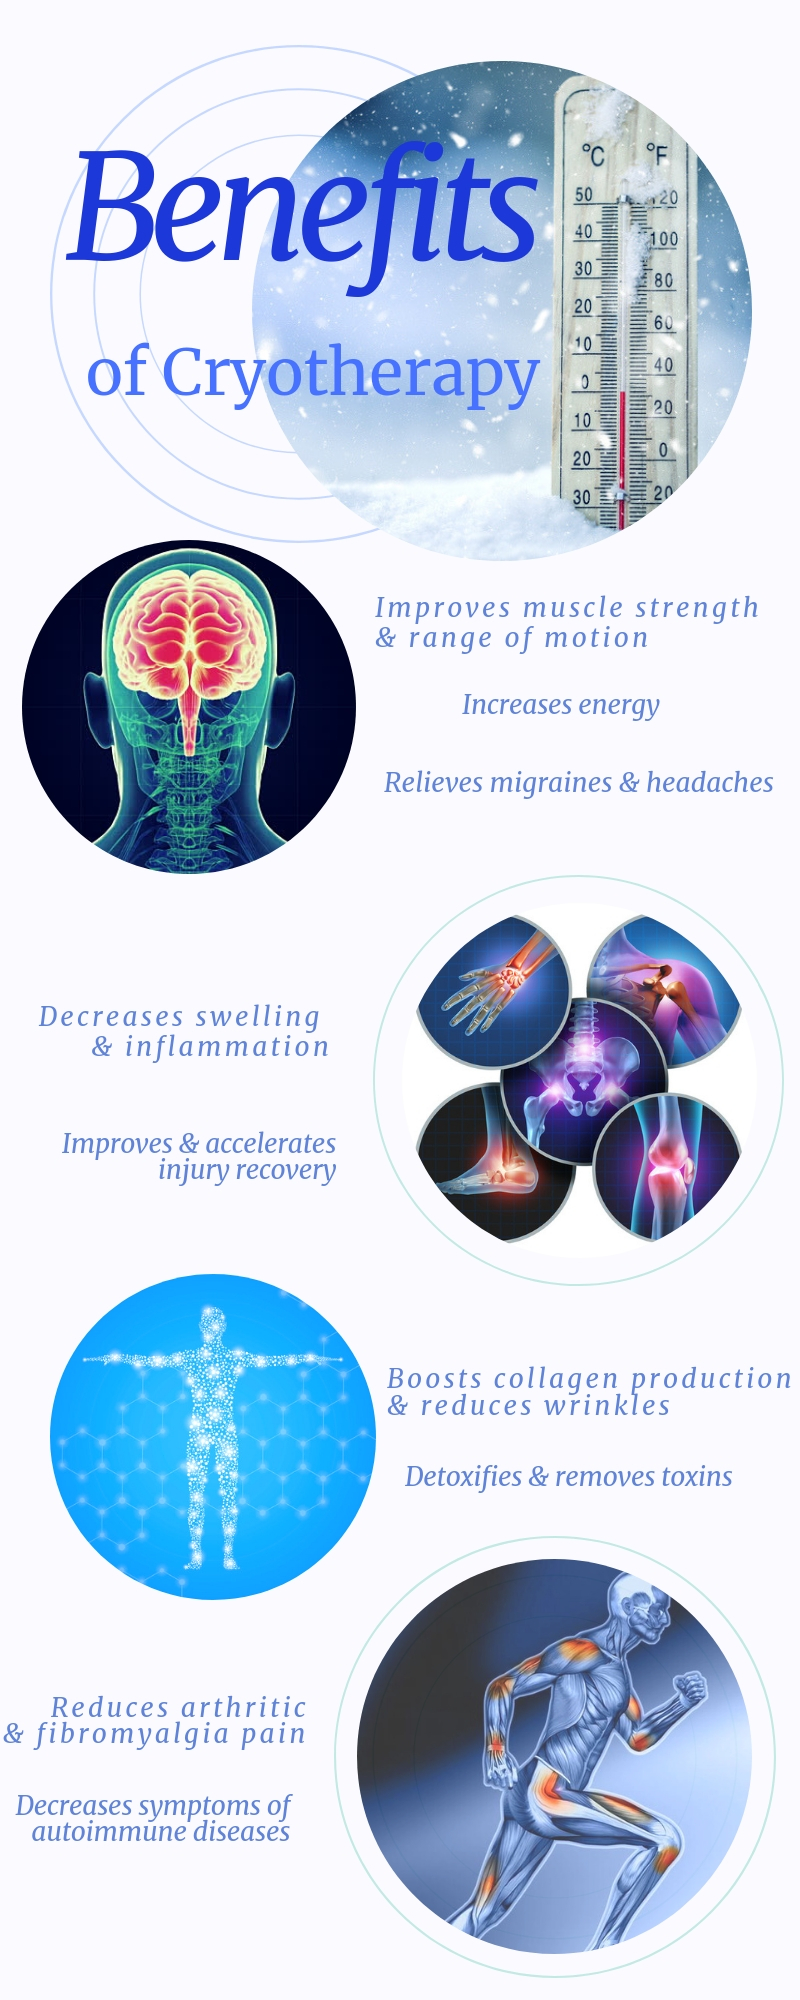 benefits of cryotherapy.jpg